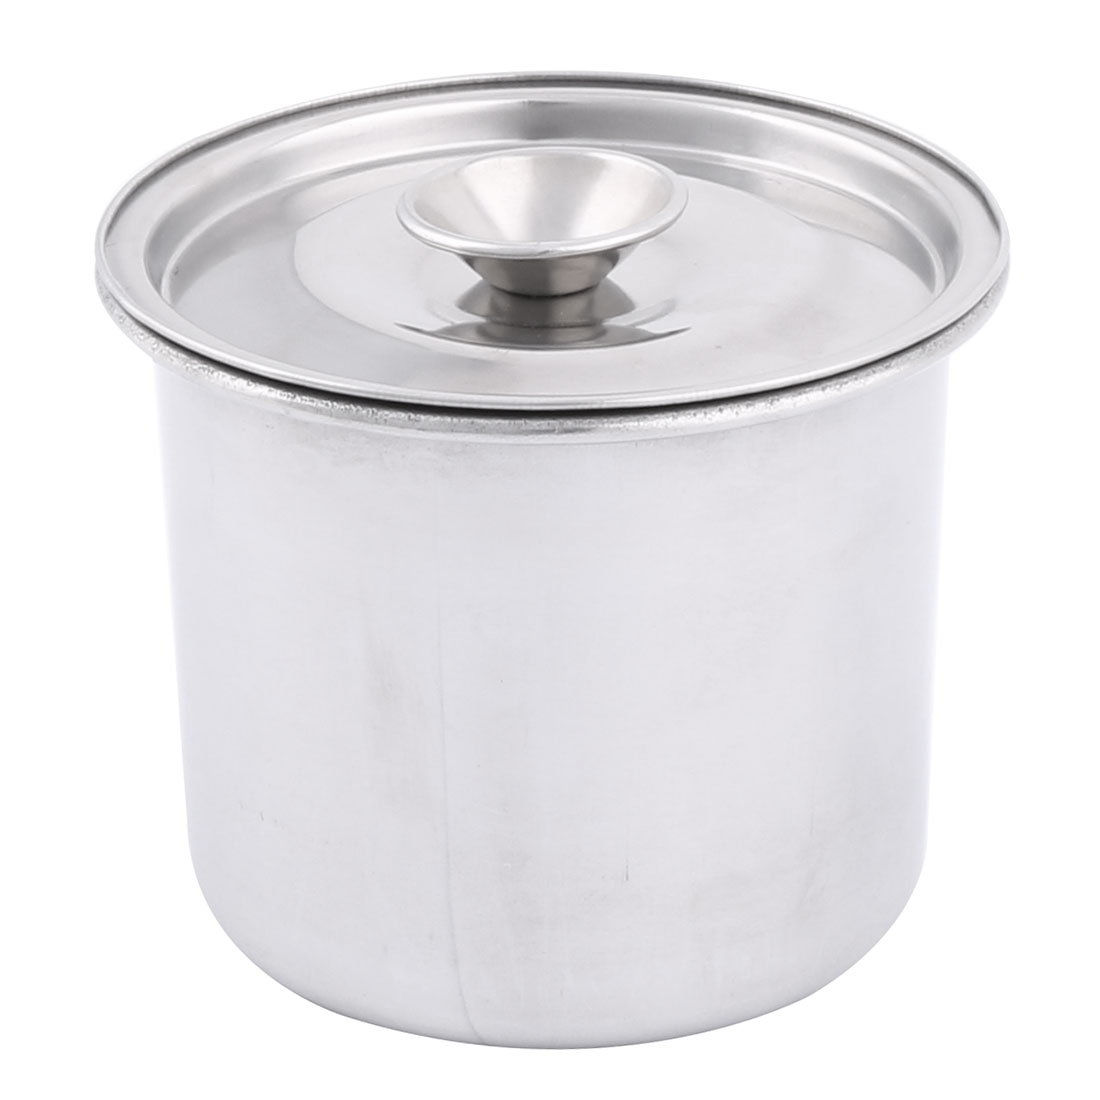 Kitchen Stainless Steel Food Soup Salad Egg Mixing Bowl Container 10cm Diameter